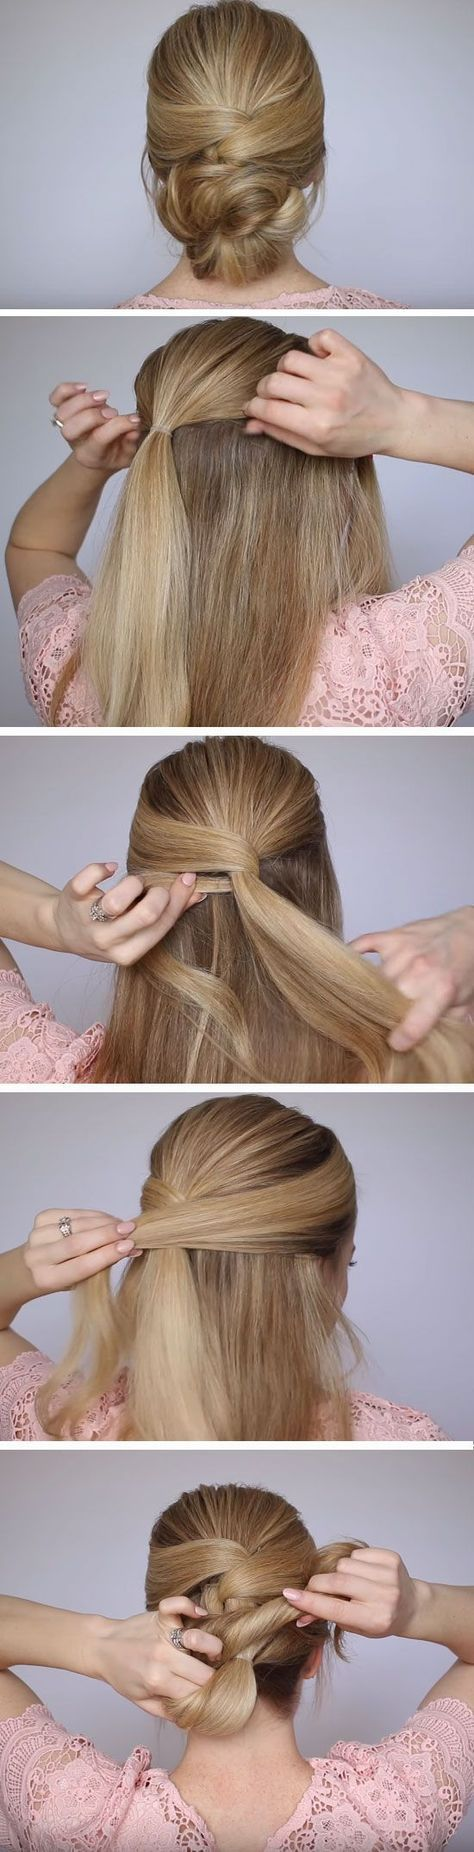 Pretty Low Bun | Quick DIY Prom Hairstyles for Medium Hair | Quick and Easy Homecoming Hairstyles for Long Hair